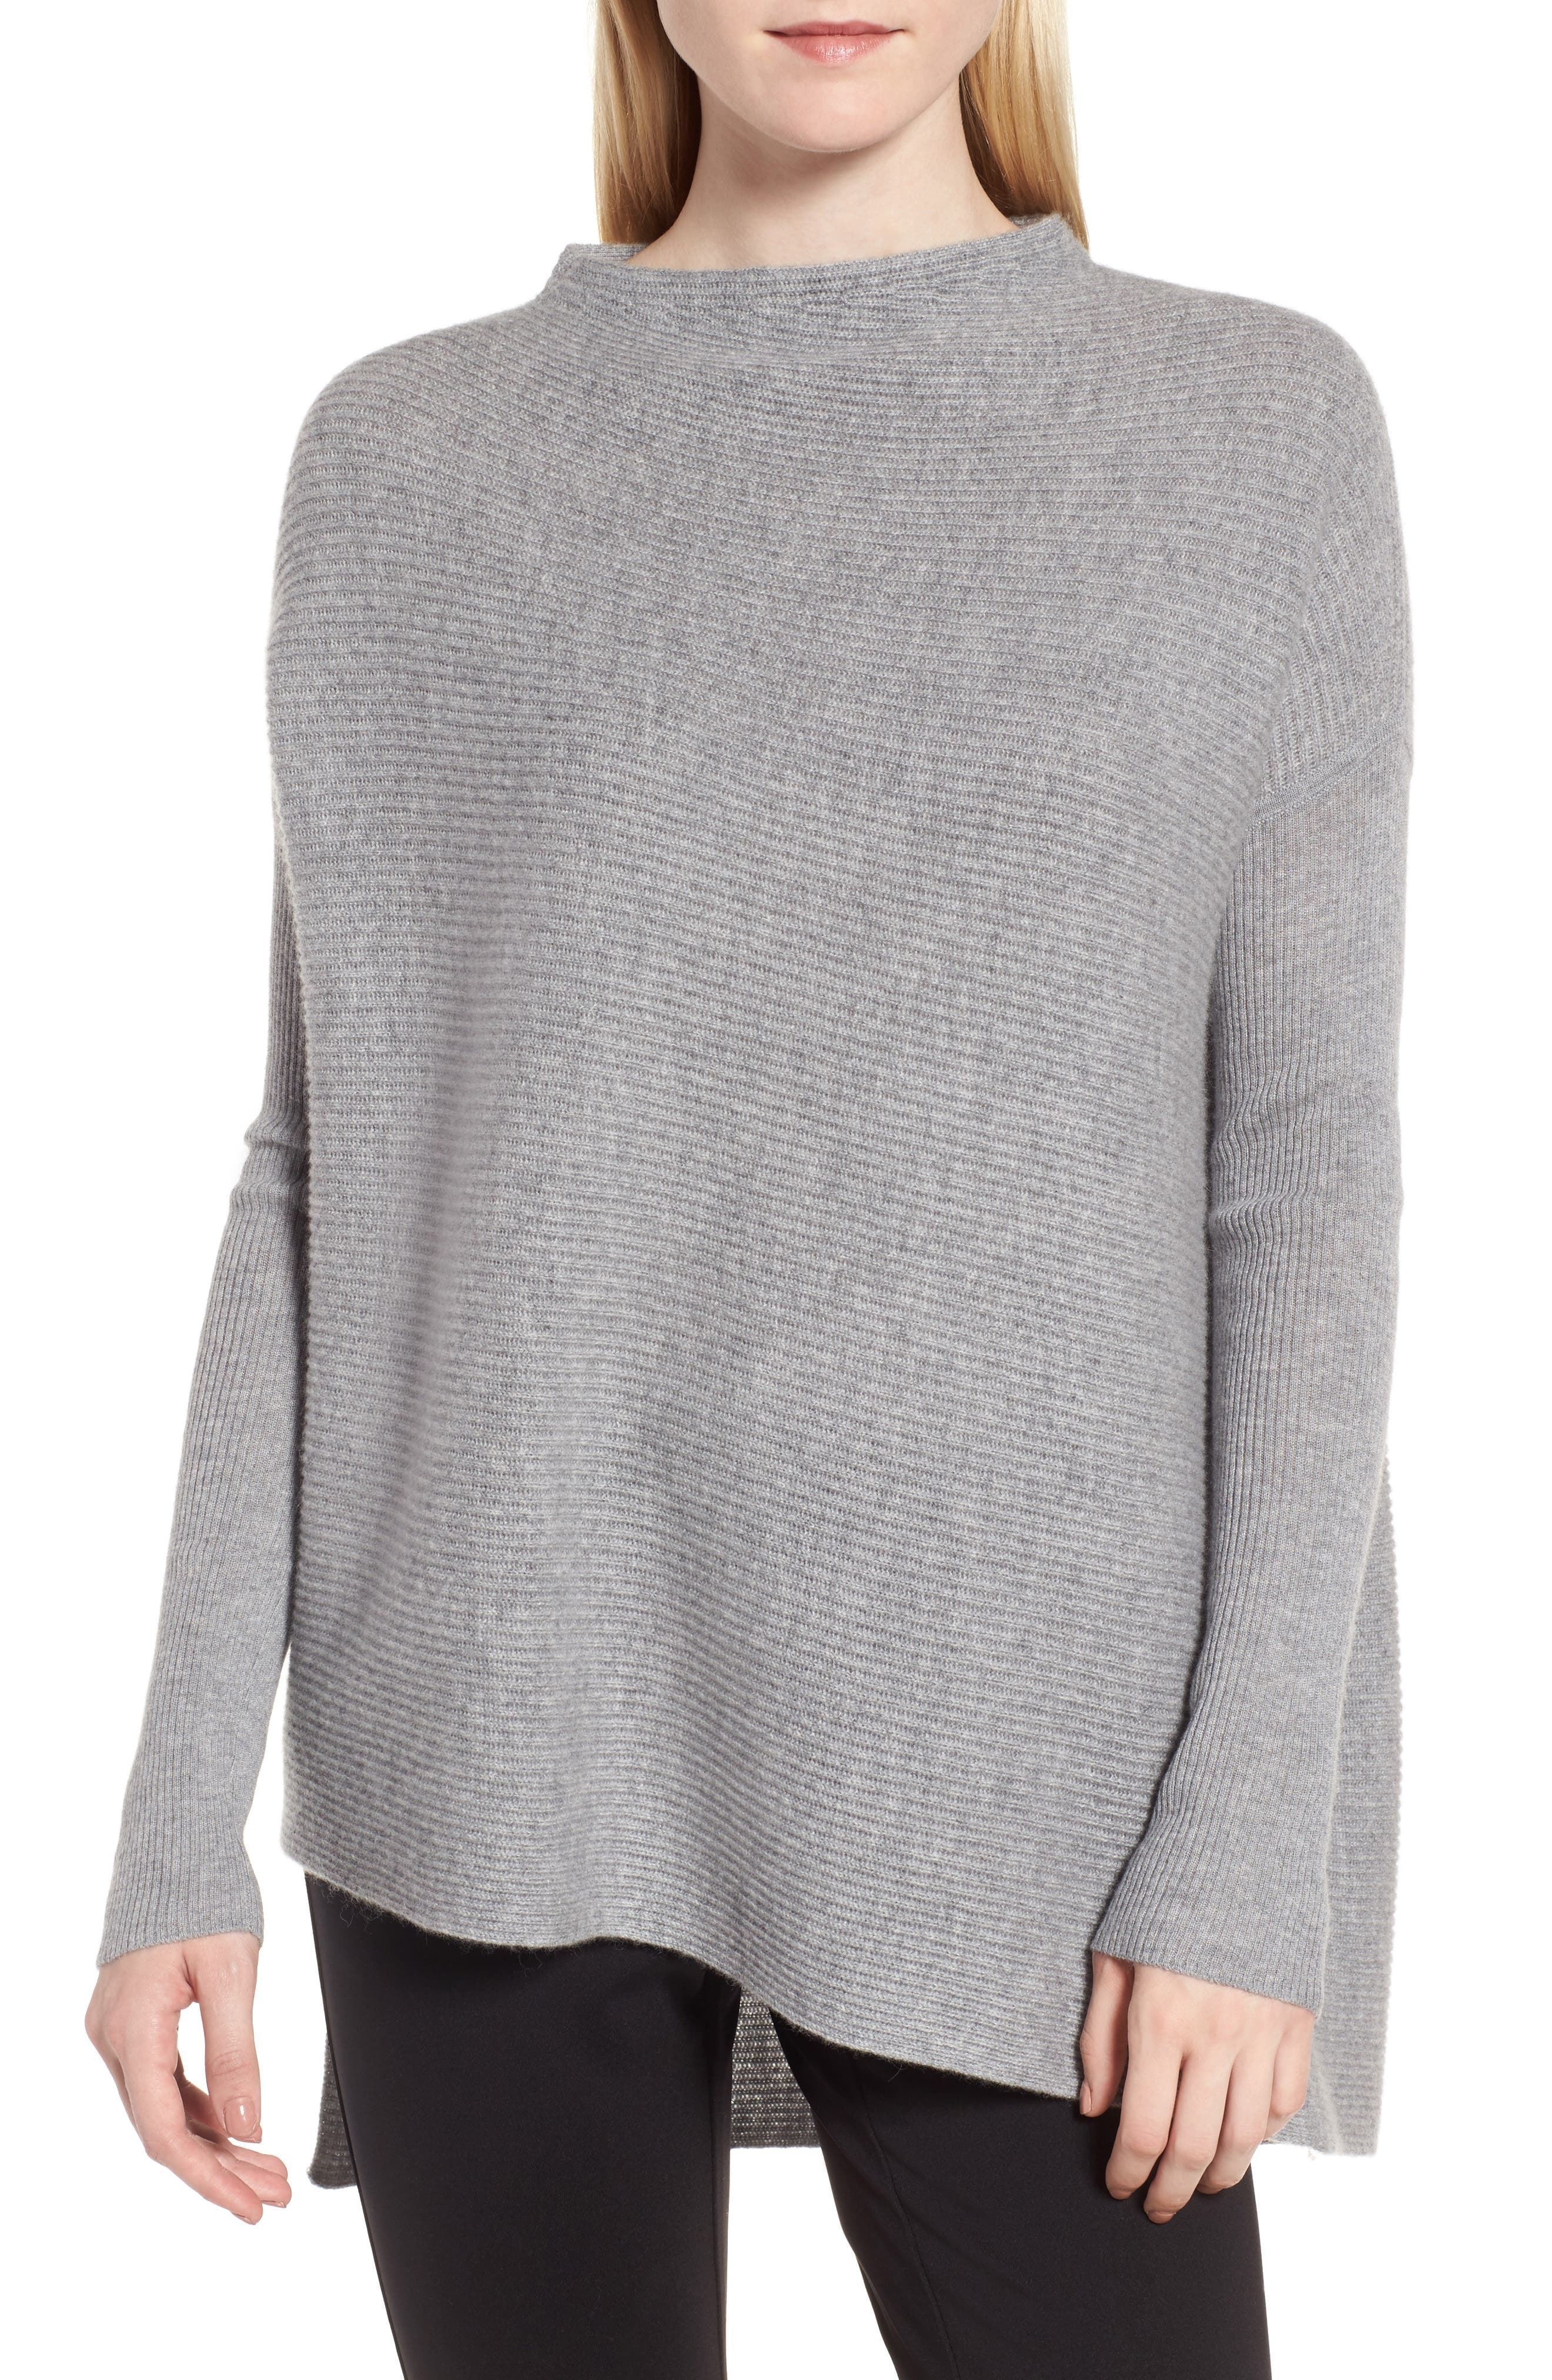 NORDSTROM SIGNATURE Cashmere Asymmetrical Pullover, Main, color, GREY FILIGREE HEATHER